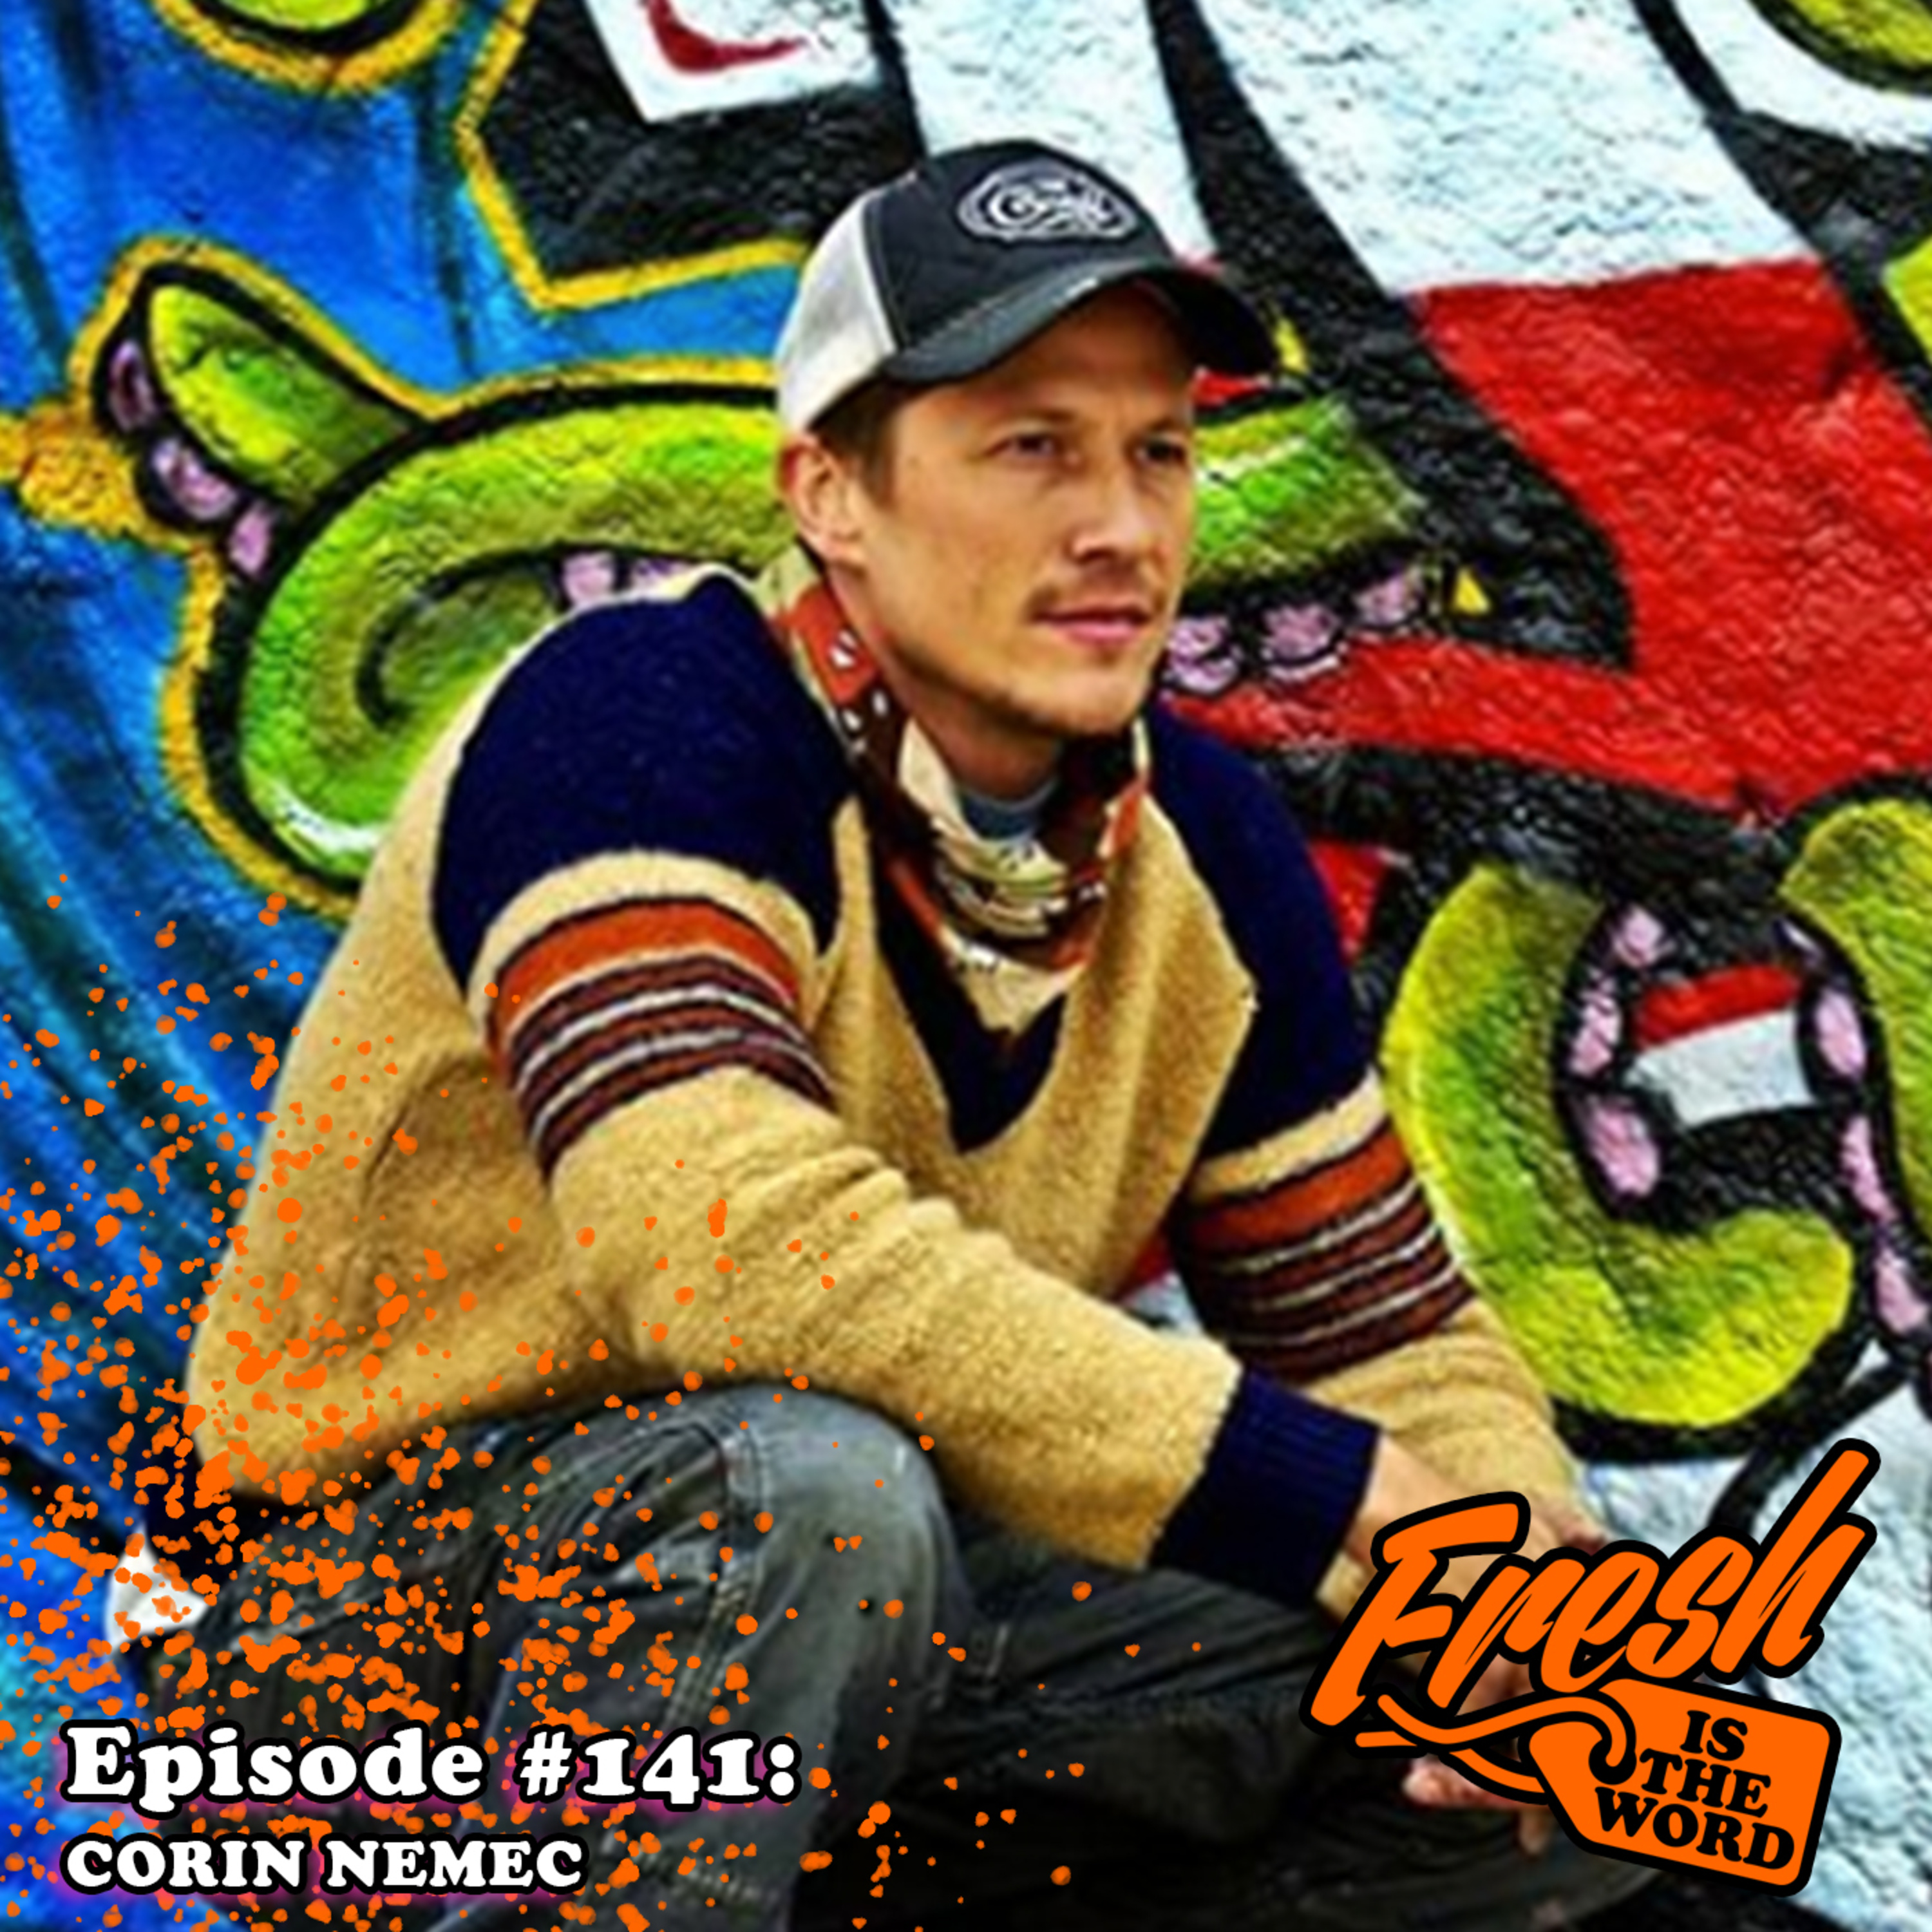 Episode #141: Corin Nemec - Actor/Graffiti Artist, 'Rottentail' Film Premiering at Select Locations Throughout April